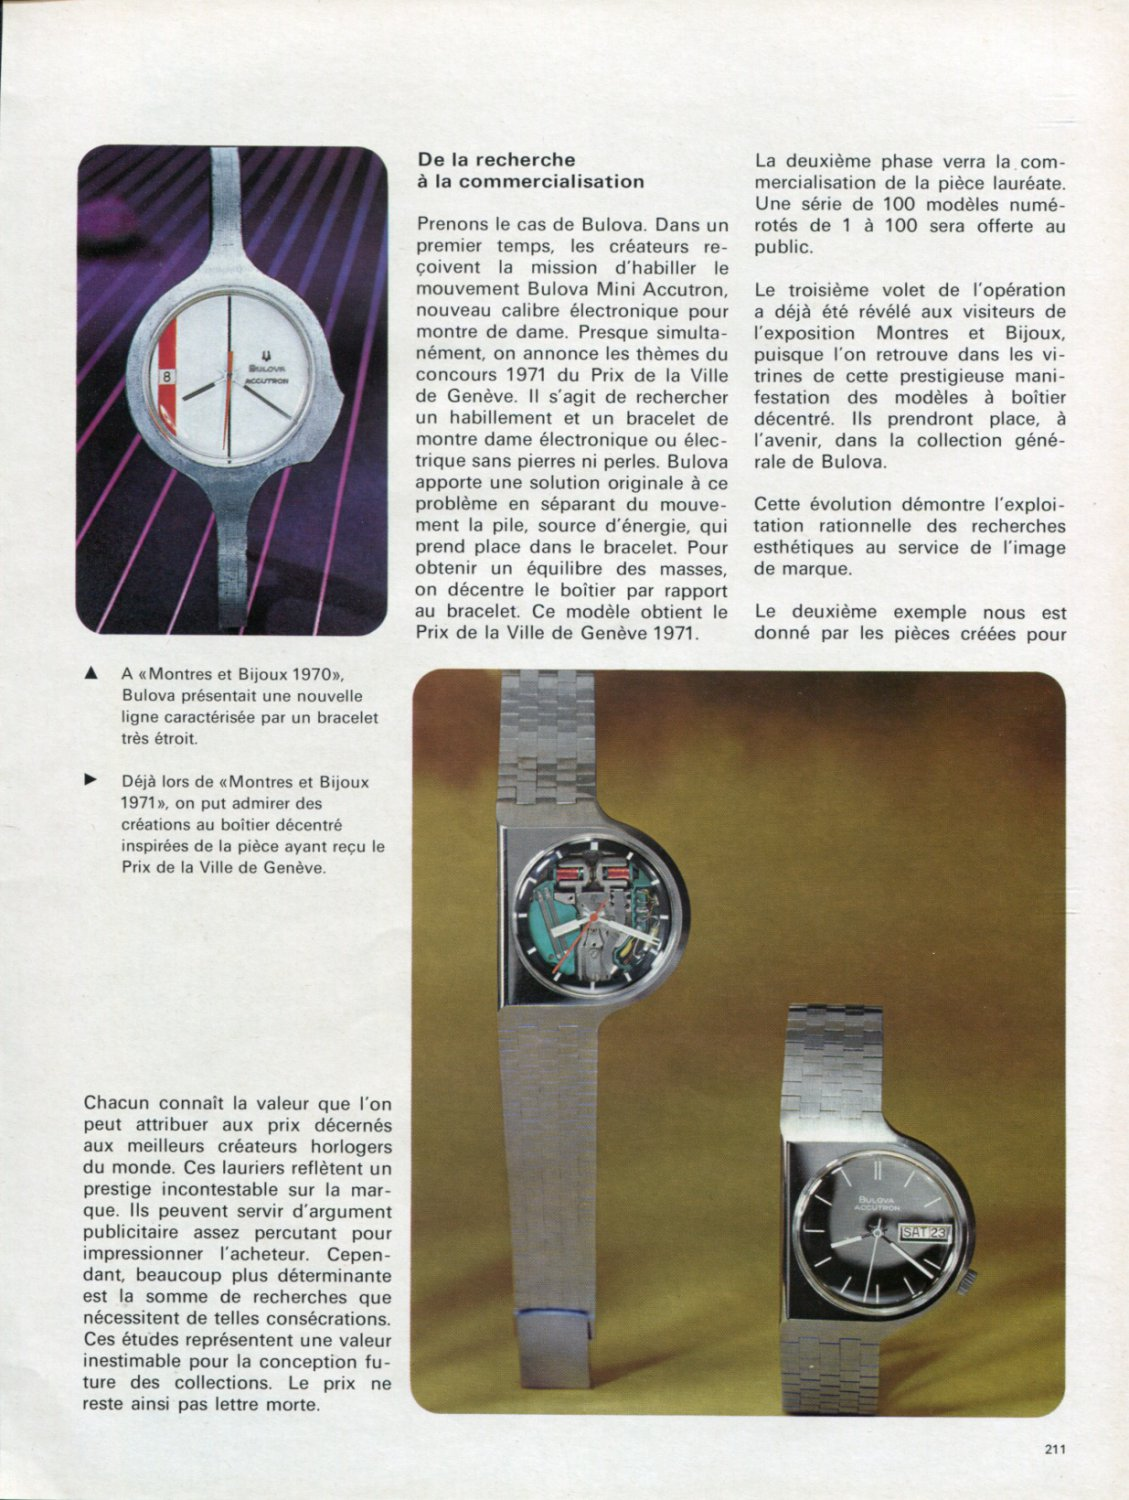 1972 L'Evolution de la Mode Horlogere Doit Etre Planifiee Swiss Magazine Article Bulova Watch Co.